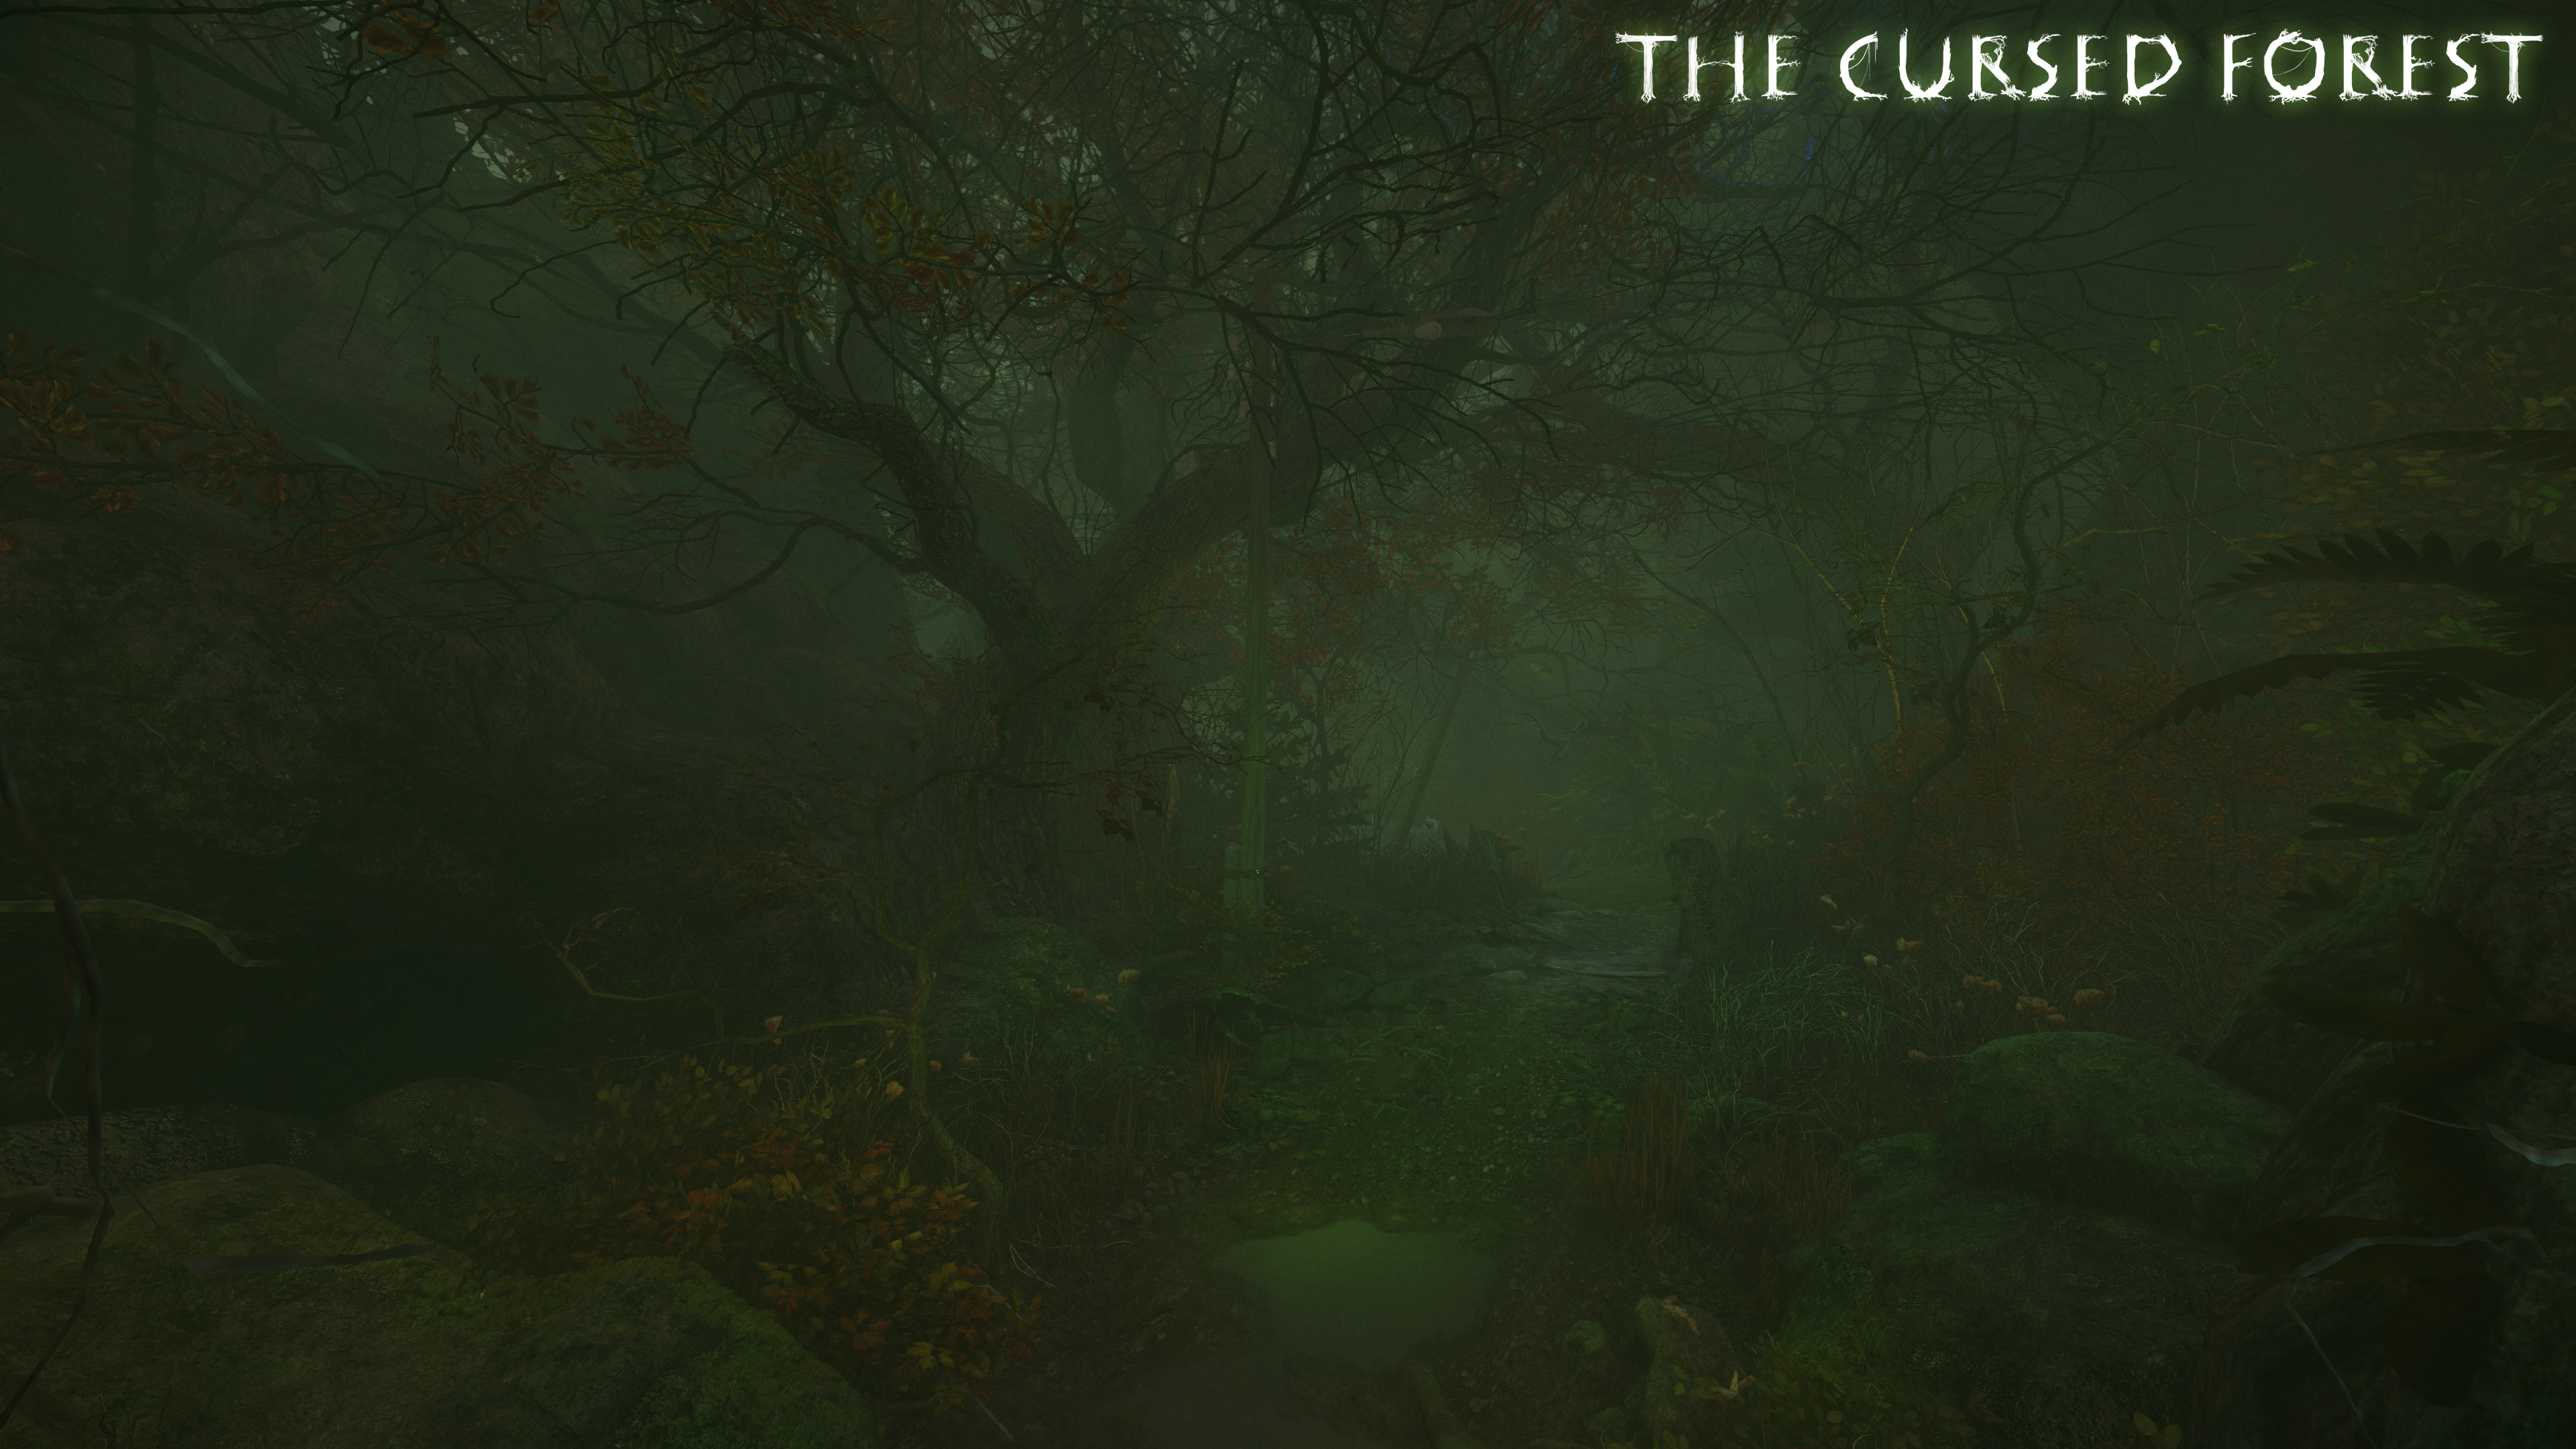 the cursed forest L3 2 L f